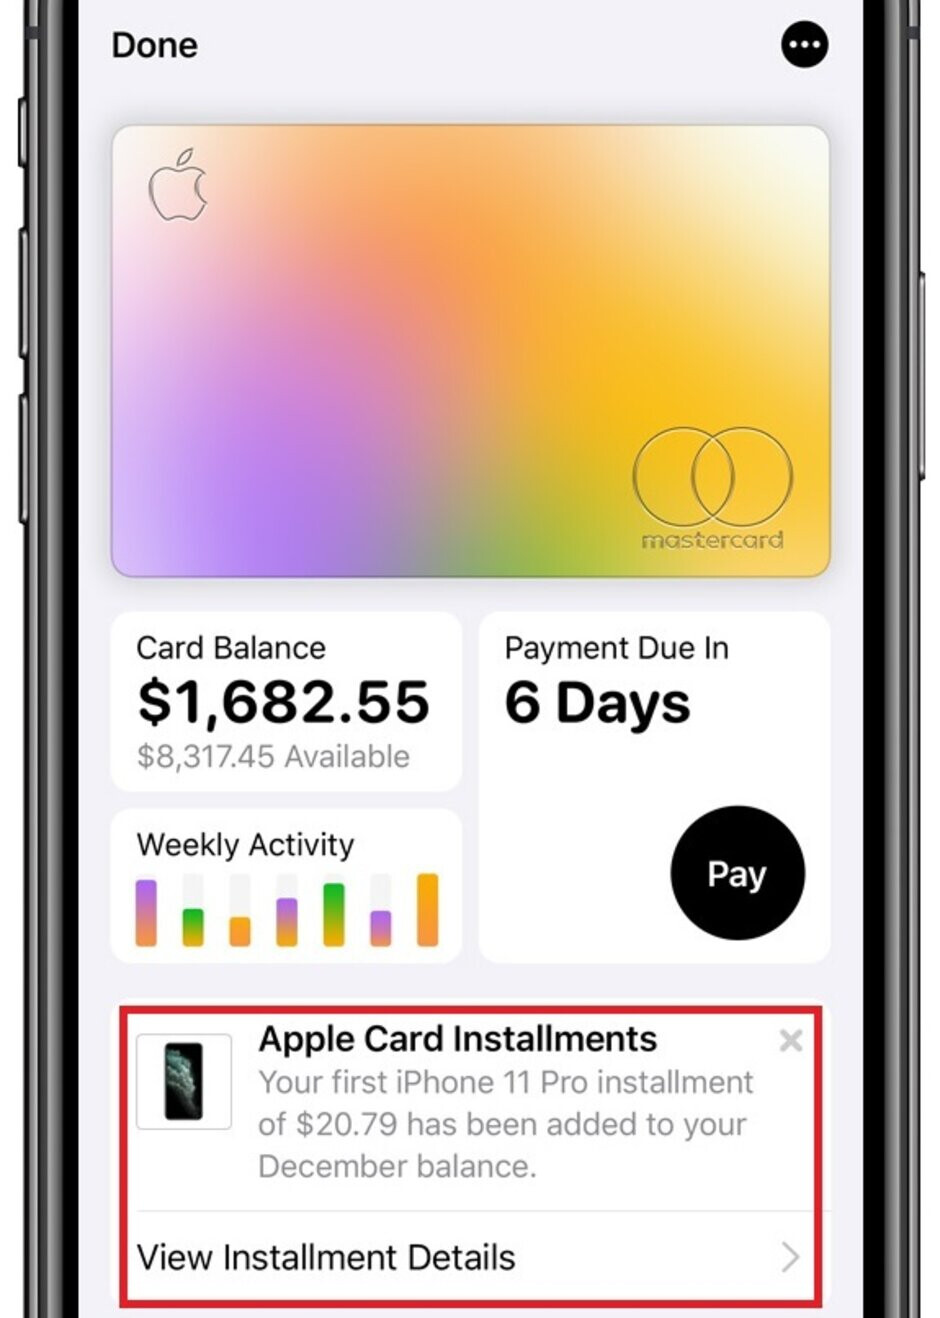 Use the Apple Card at the Apple Store and pay off your new iPhone by making 24 interest-free payments - Apple Card holders can buy an iPhone and make 24 monthly interest-free payments